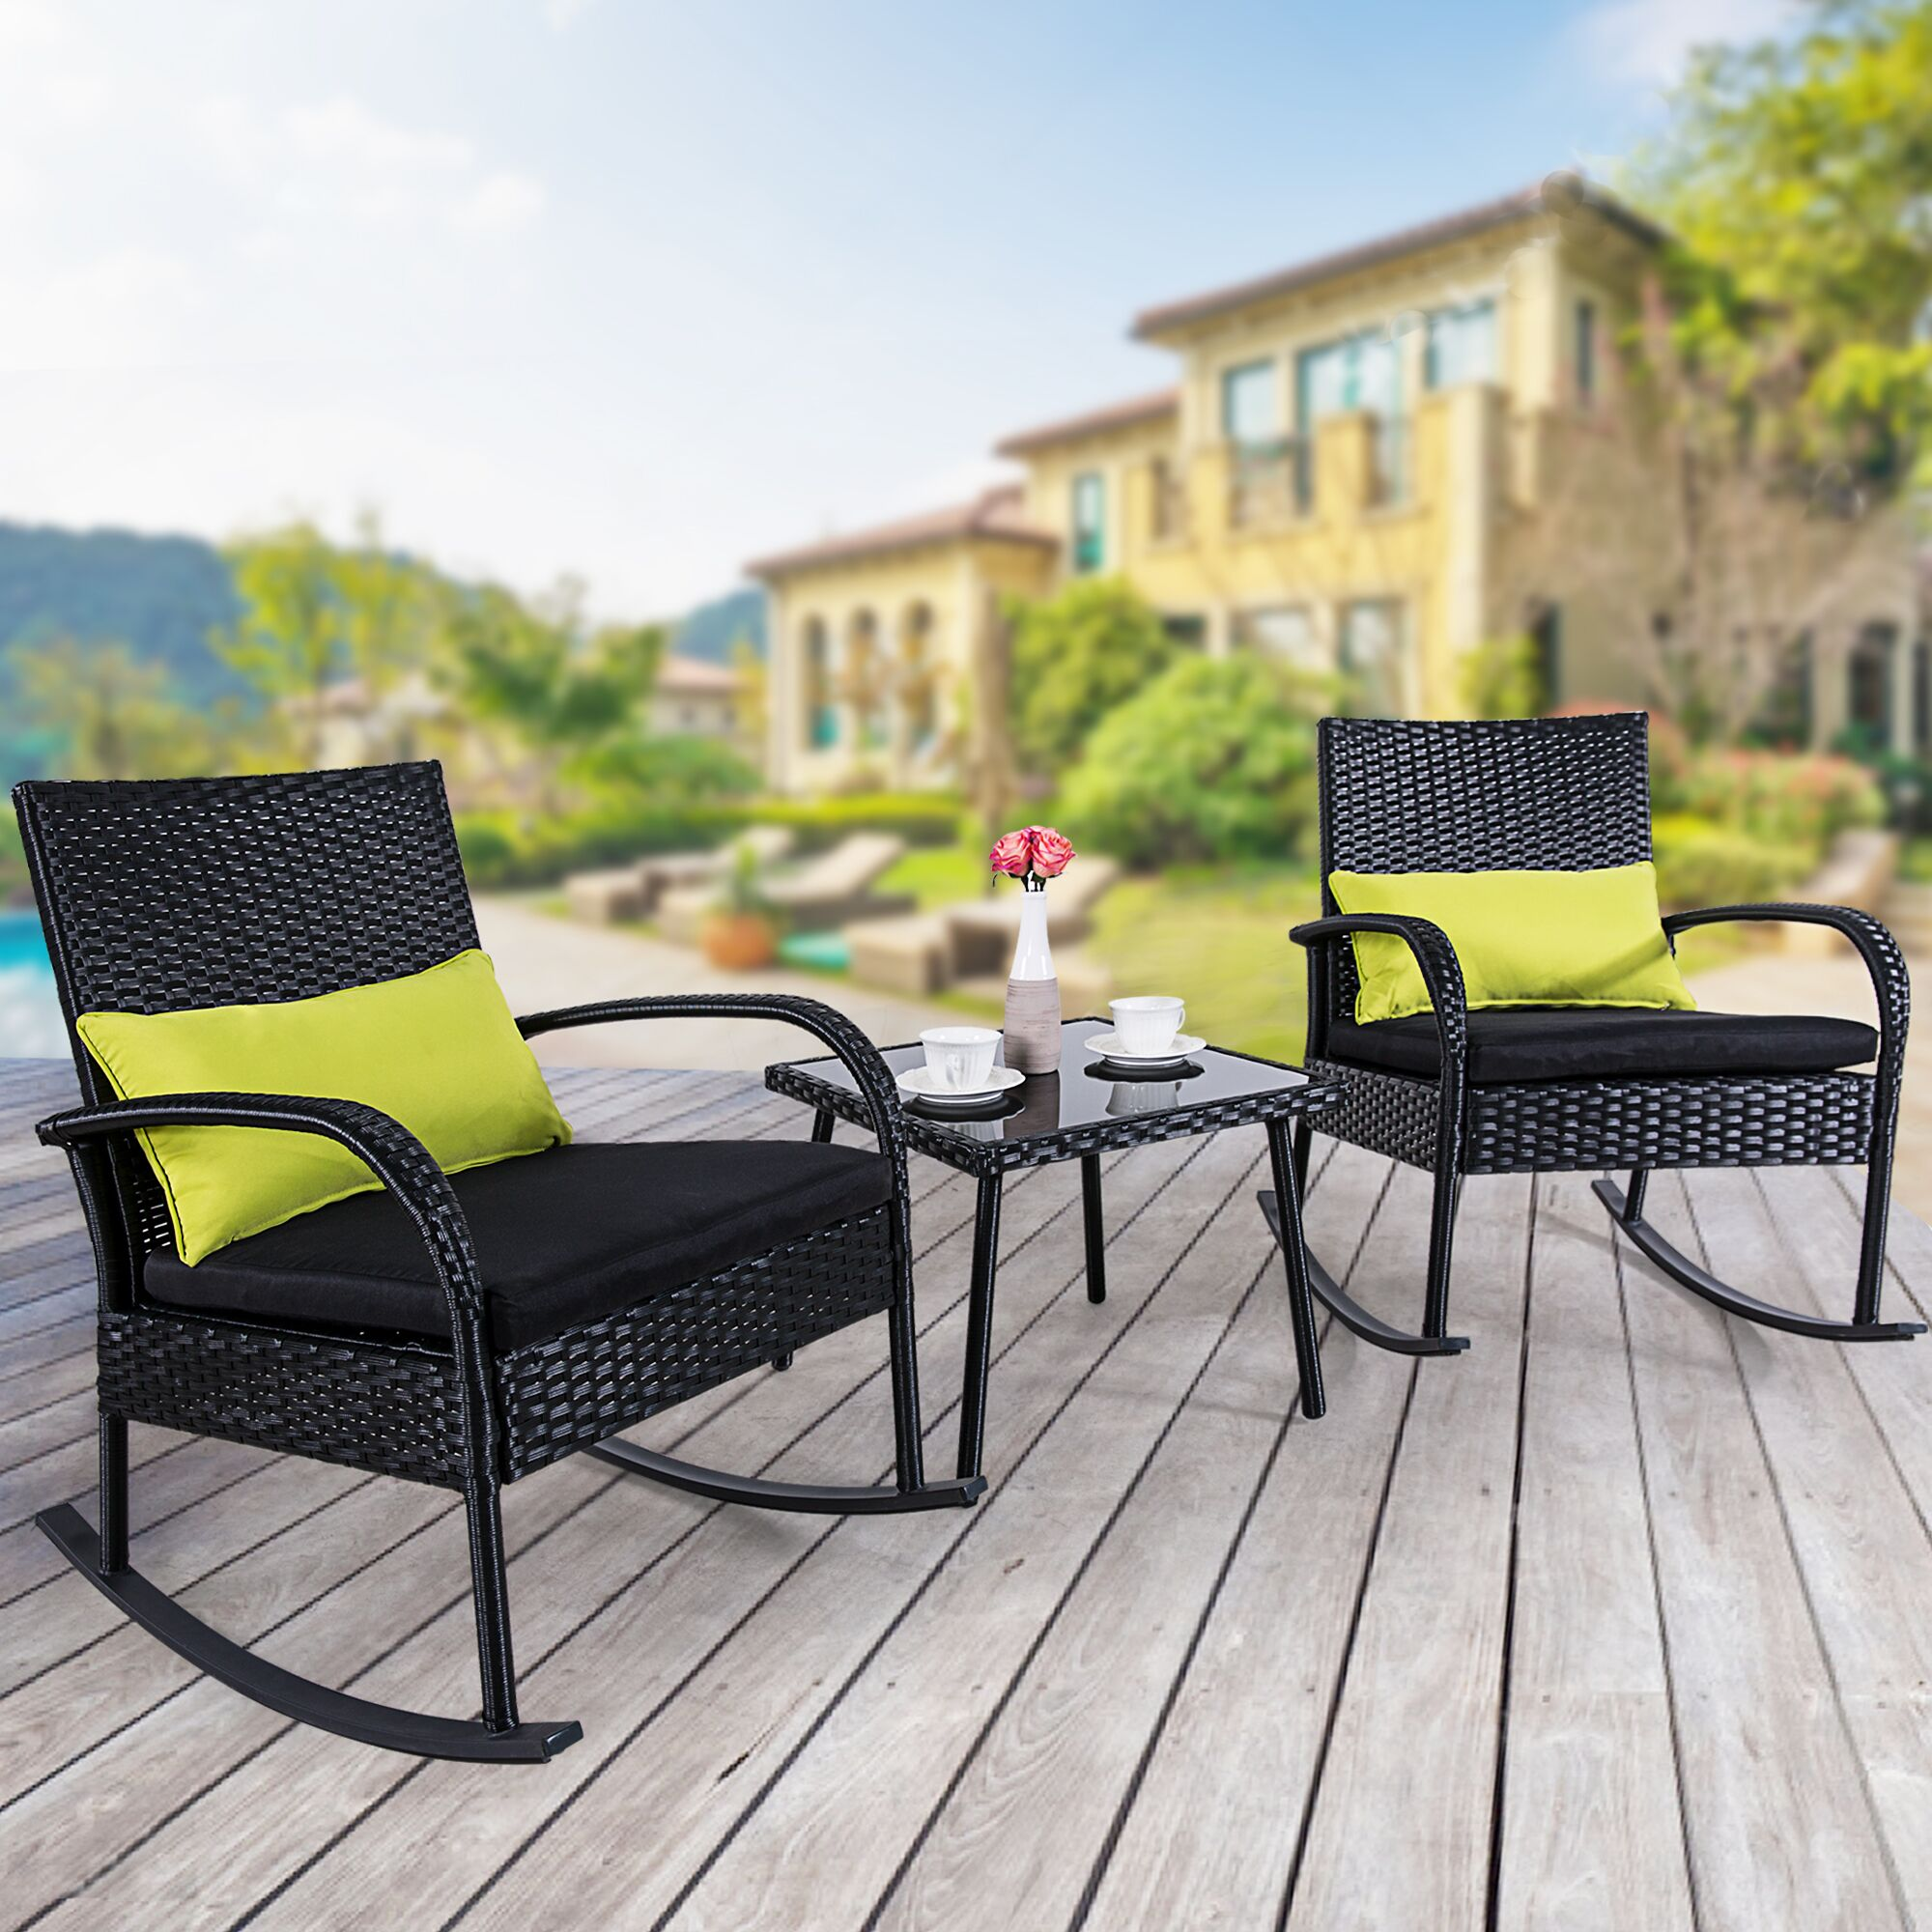 Imogen 3 Piece Rattan Seating Group with Cushion